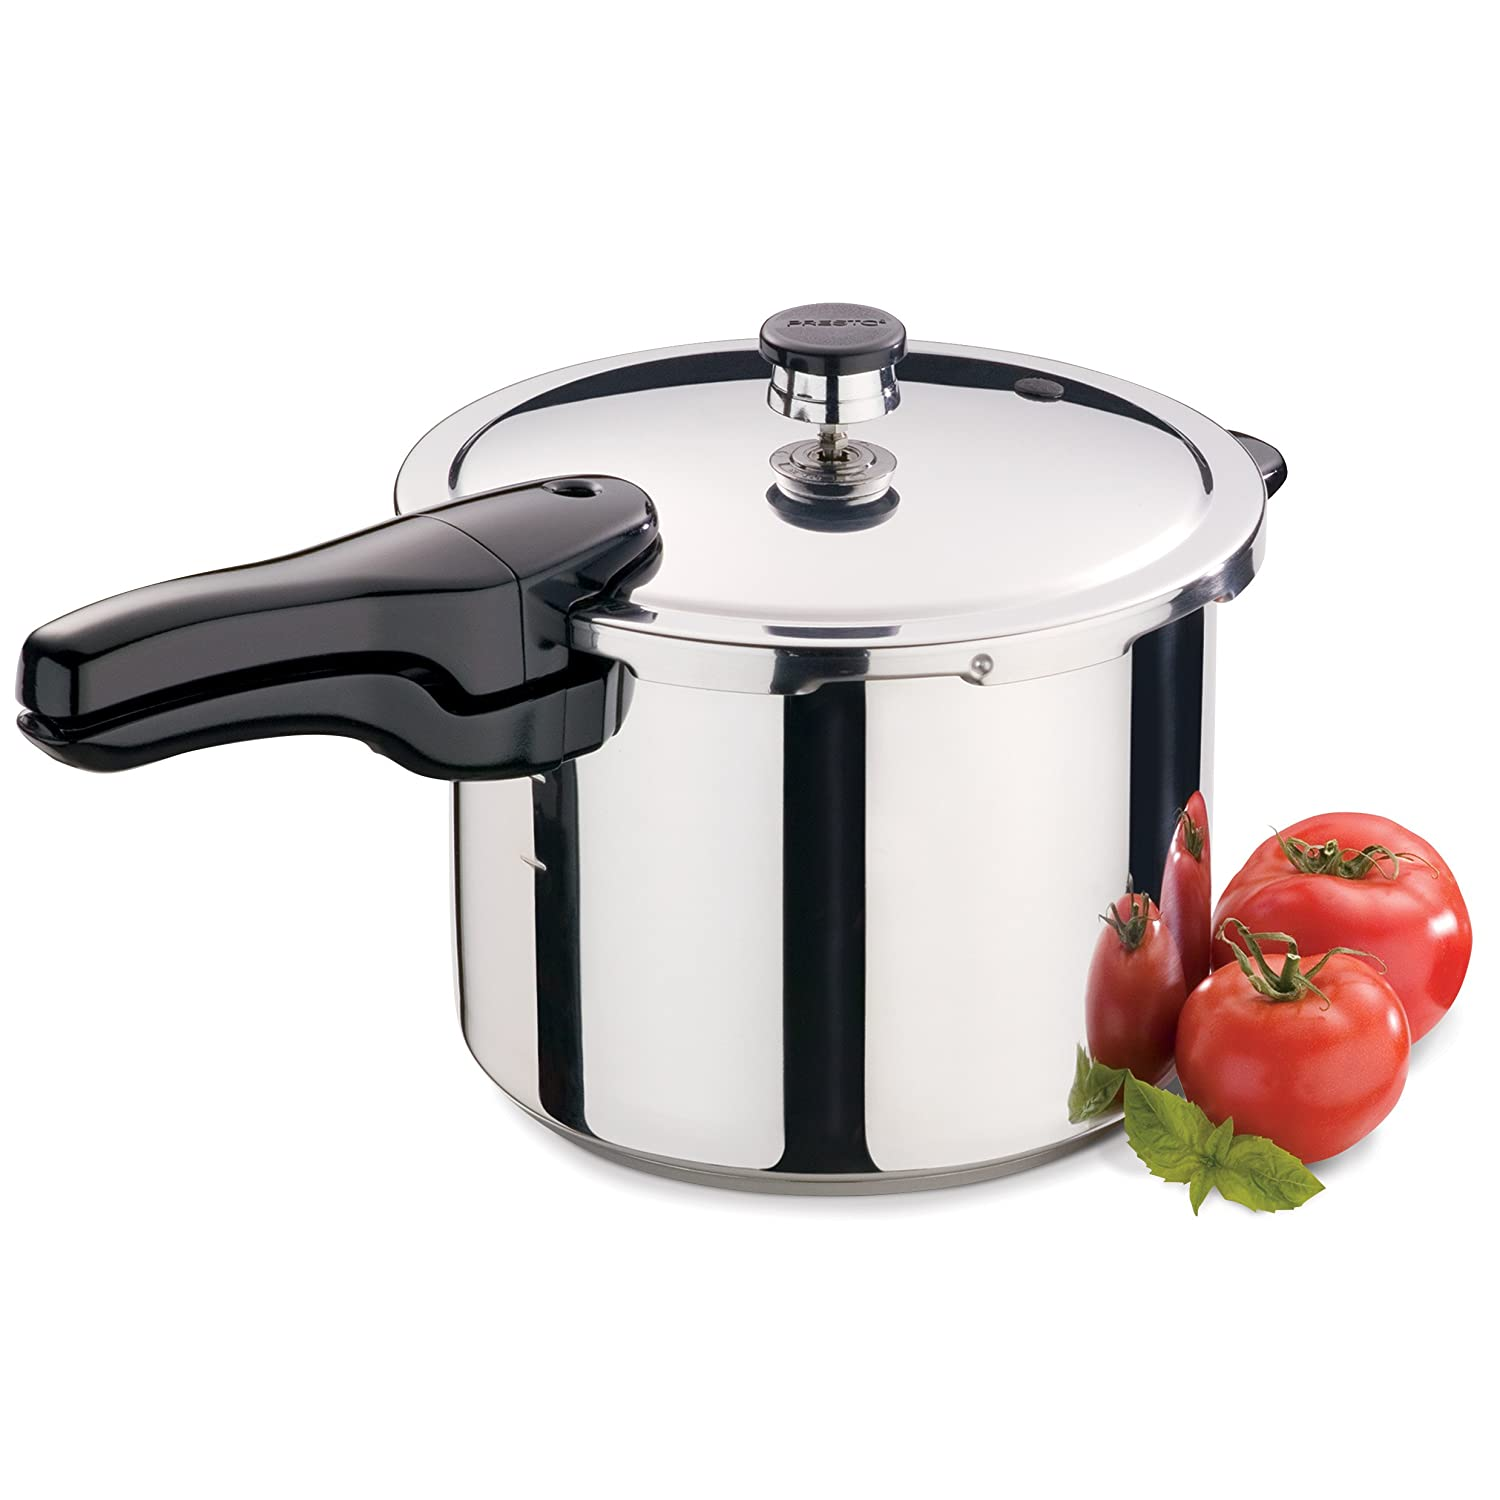 Watch Common Mistakes With Pressure Cooker in Hindi video